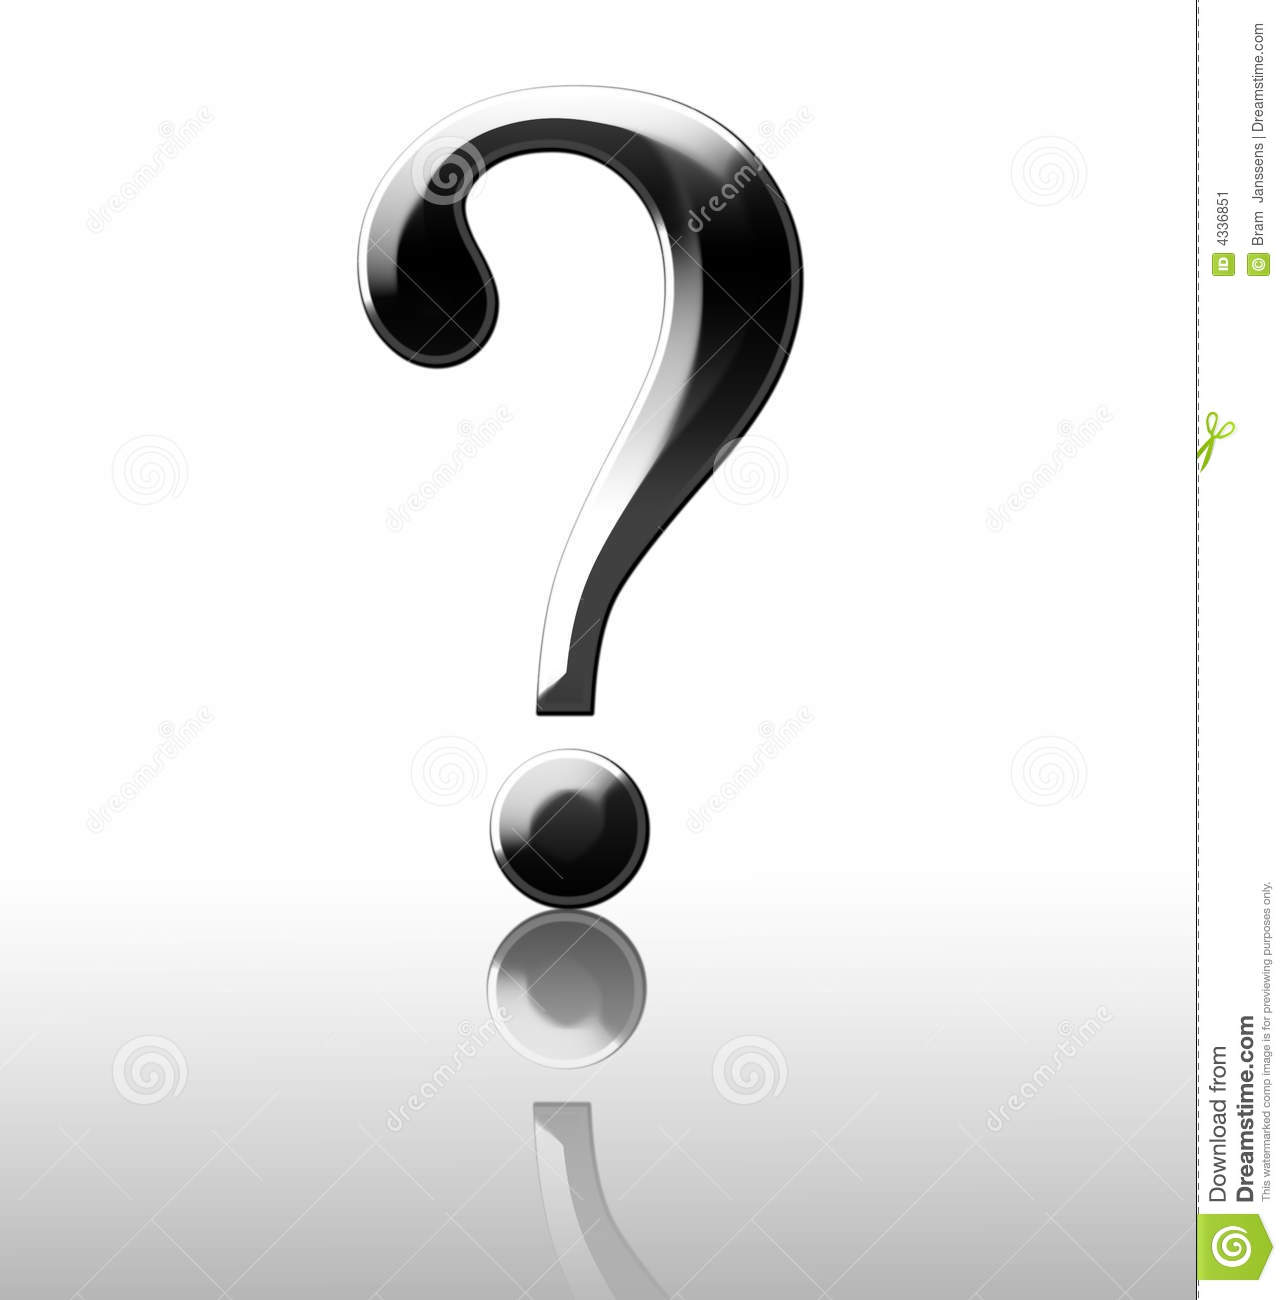 question stock image 3d question mark stock image image 4336851 2465